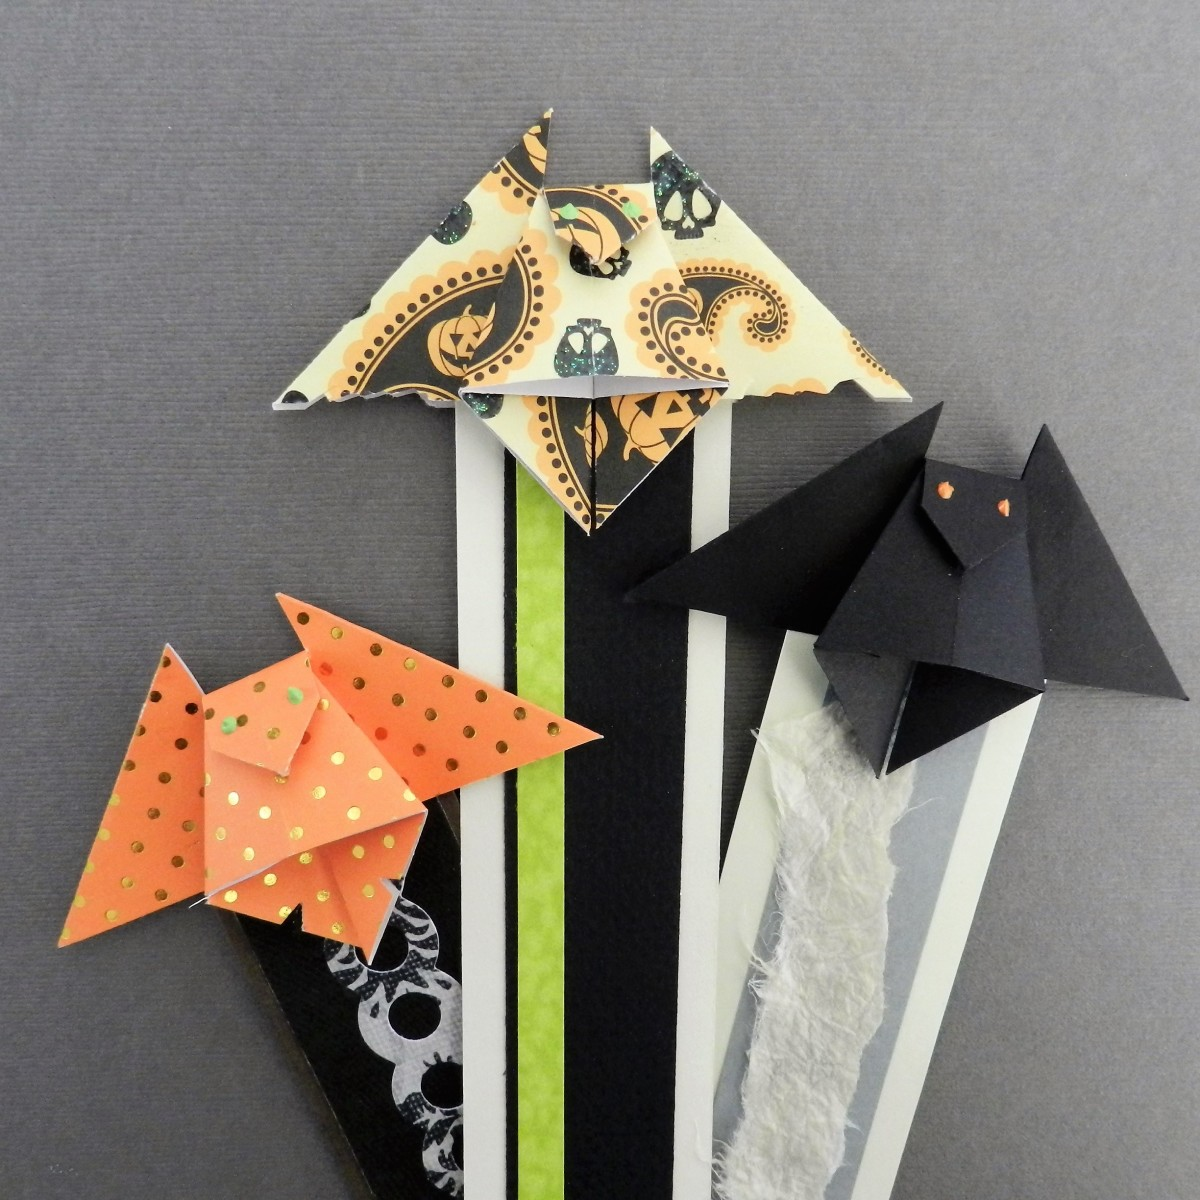 Origami bat bookmarks are a fun and festive Halloween treat—without the calories!